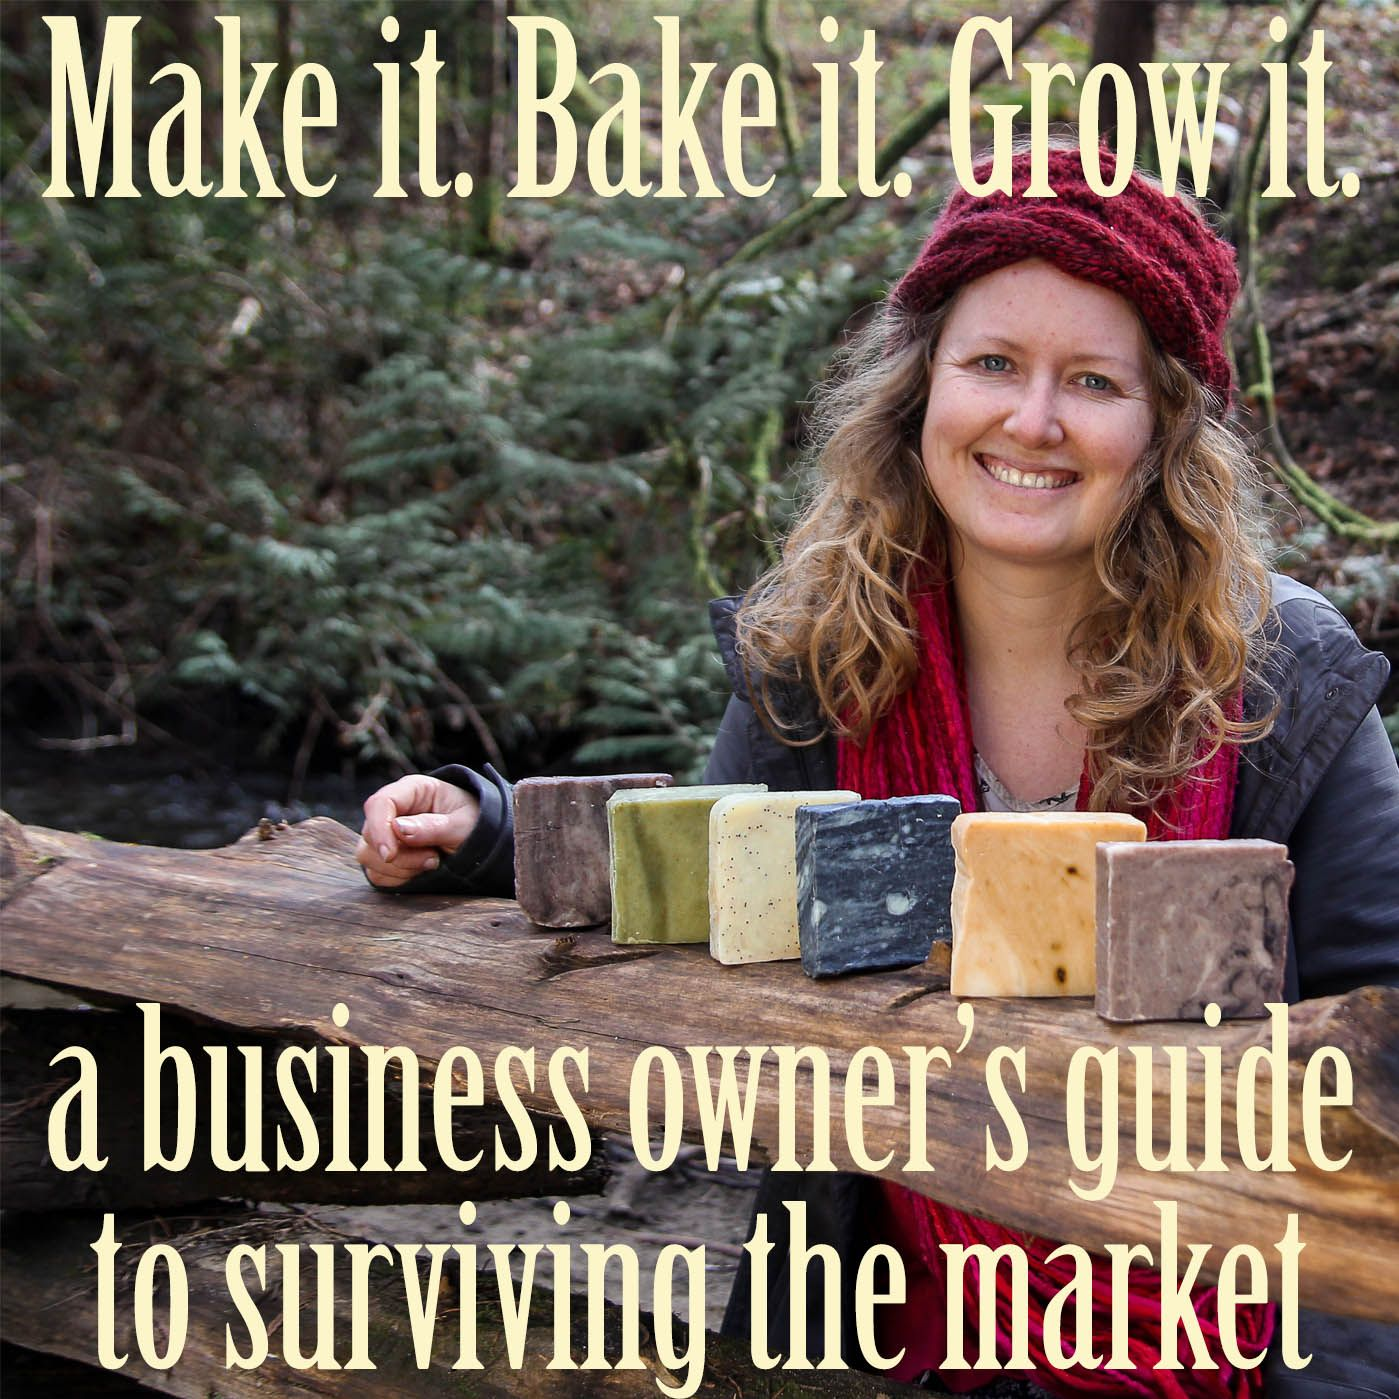 Ep 13 Aly Coy with Make it Bake it Grow it